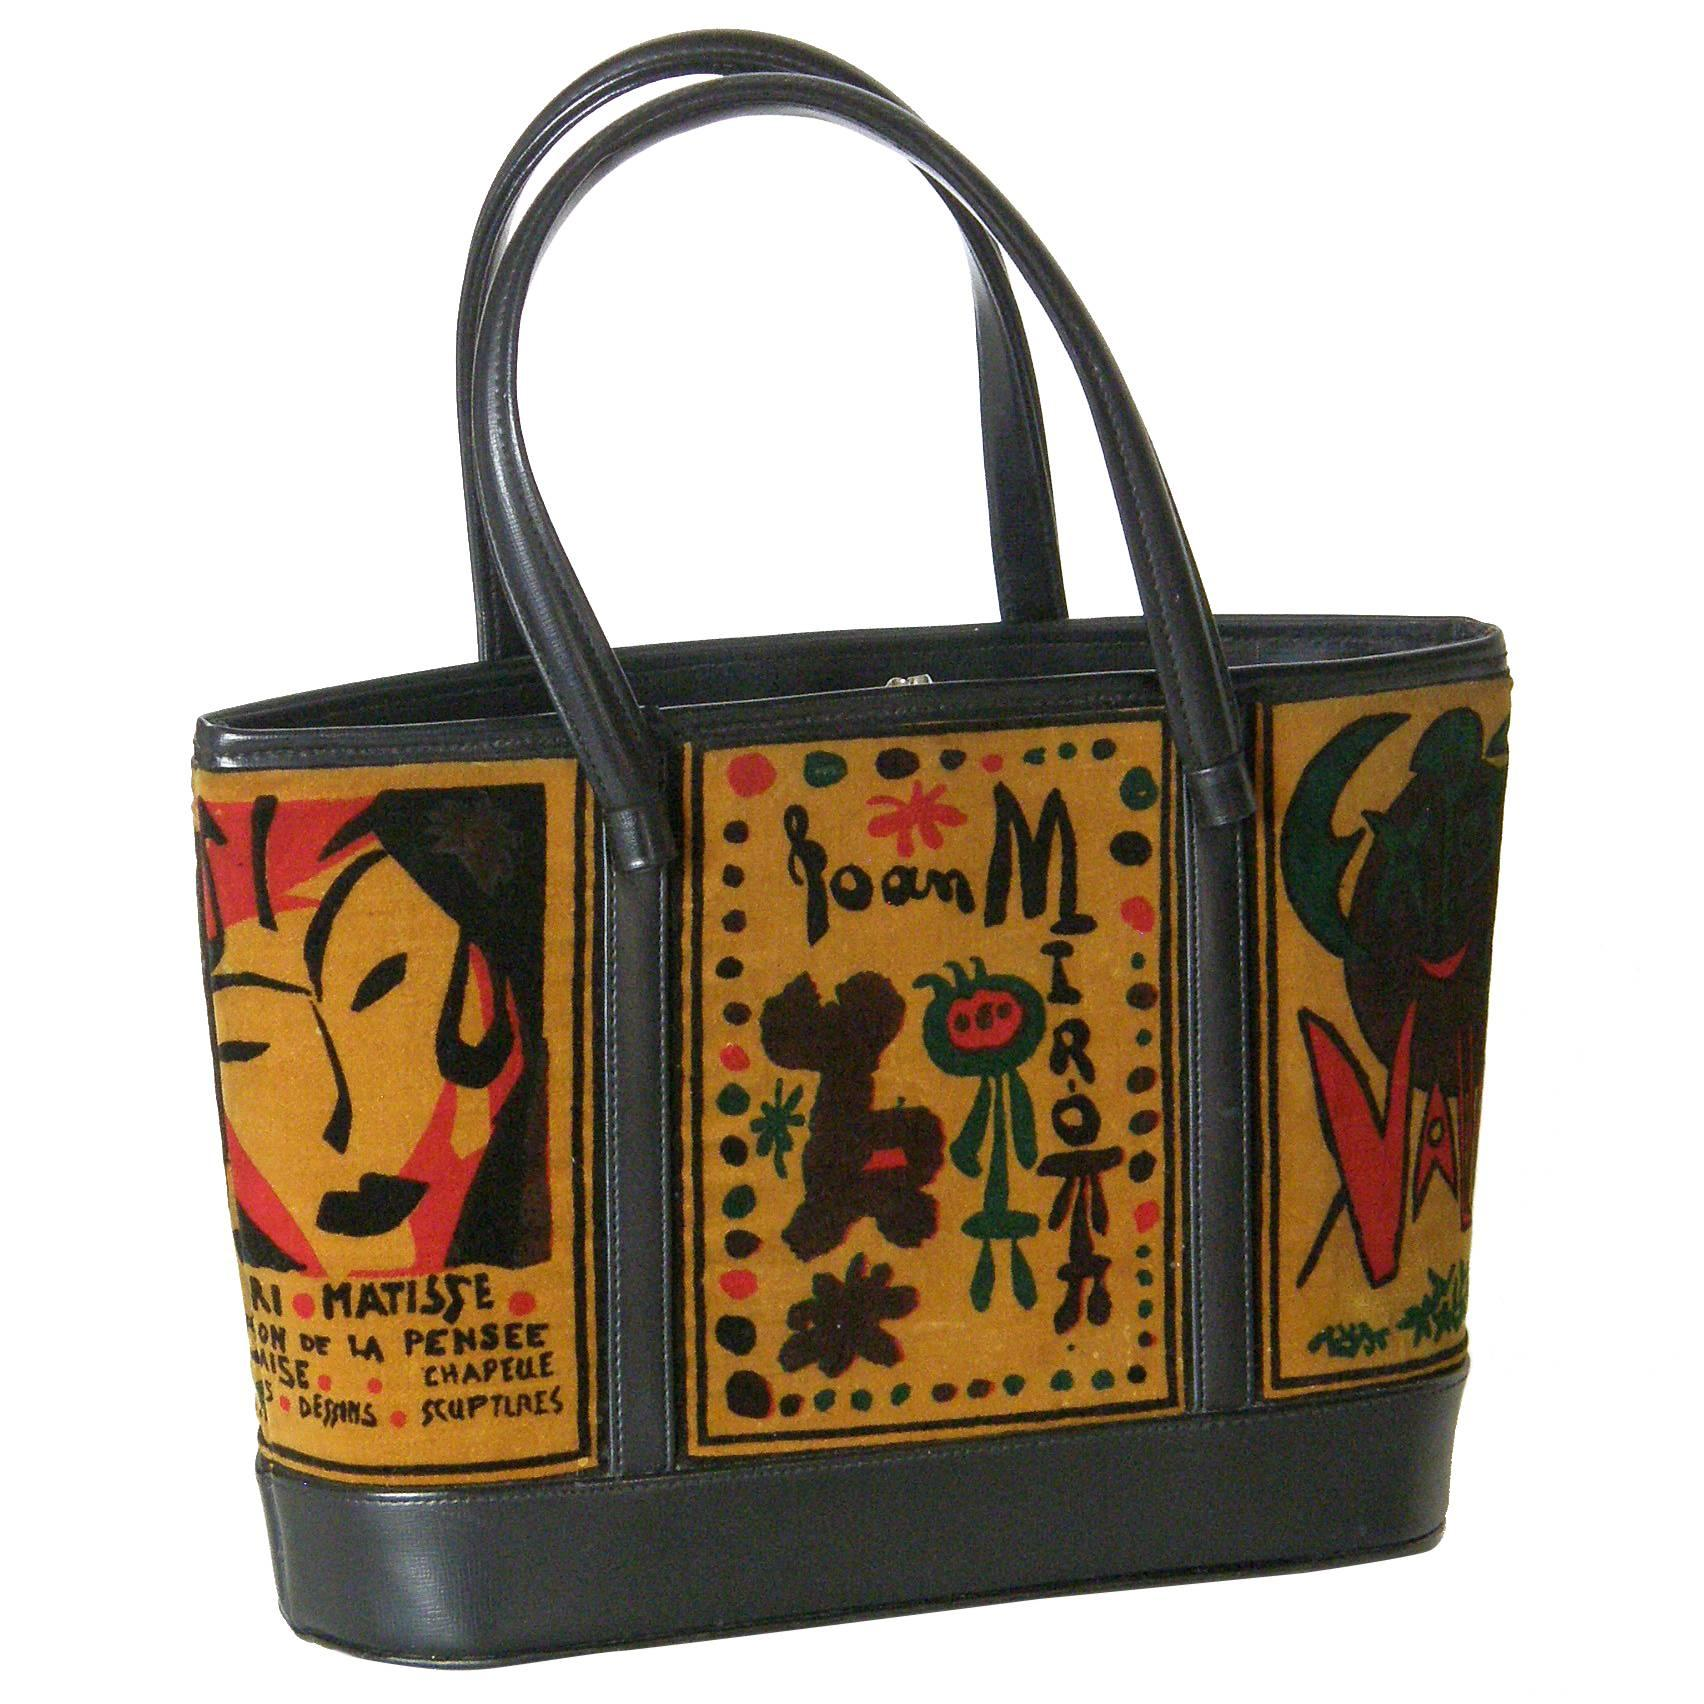 1stdibs Souré Handbag With Modern Art Themed Printed Velveteen VoVjWbAb